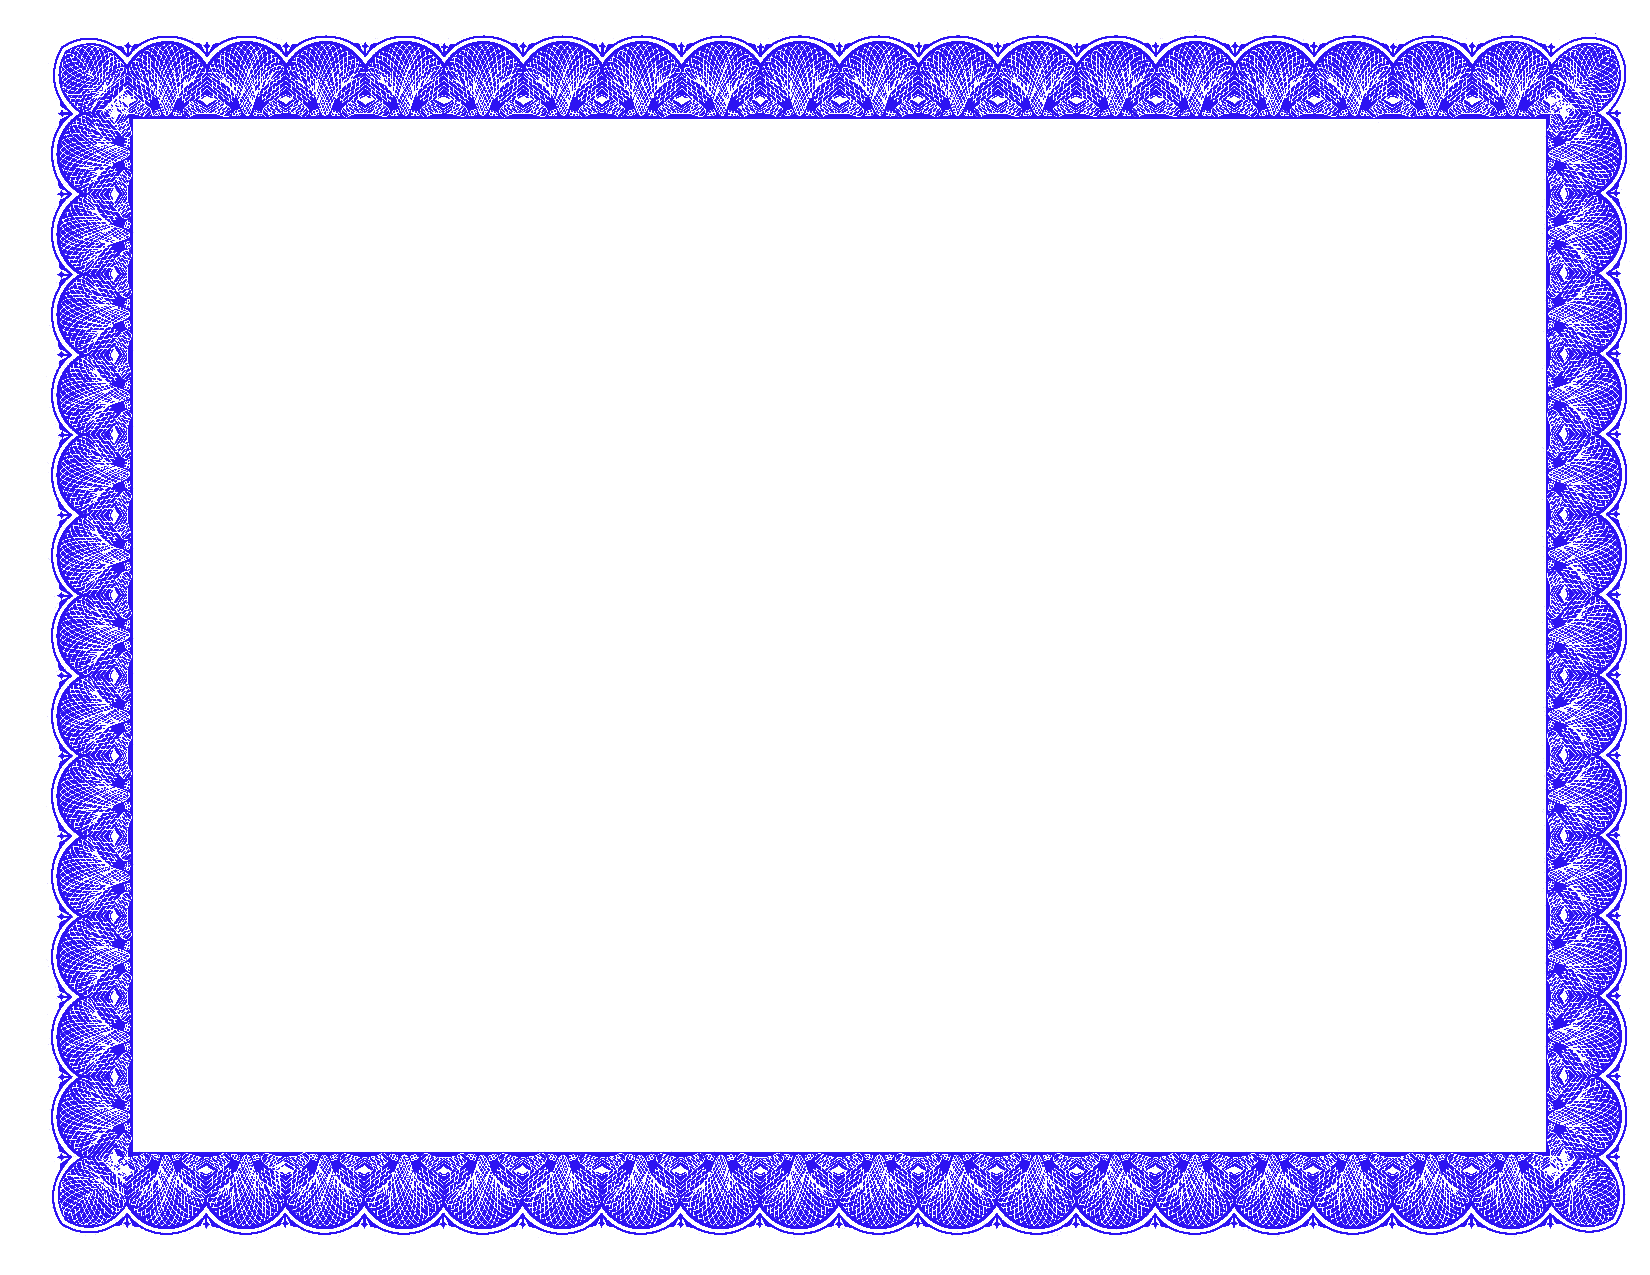 Square clipart cool. Fancy certificate border ideal